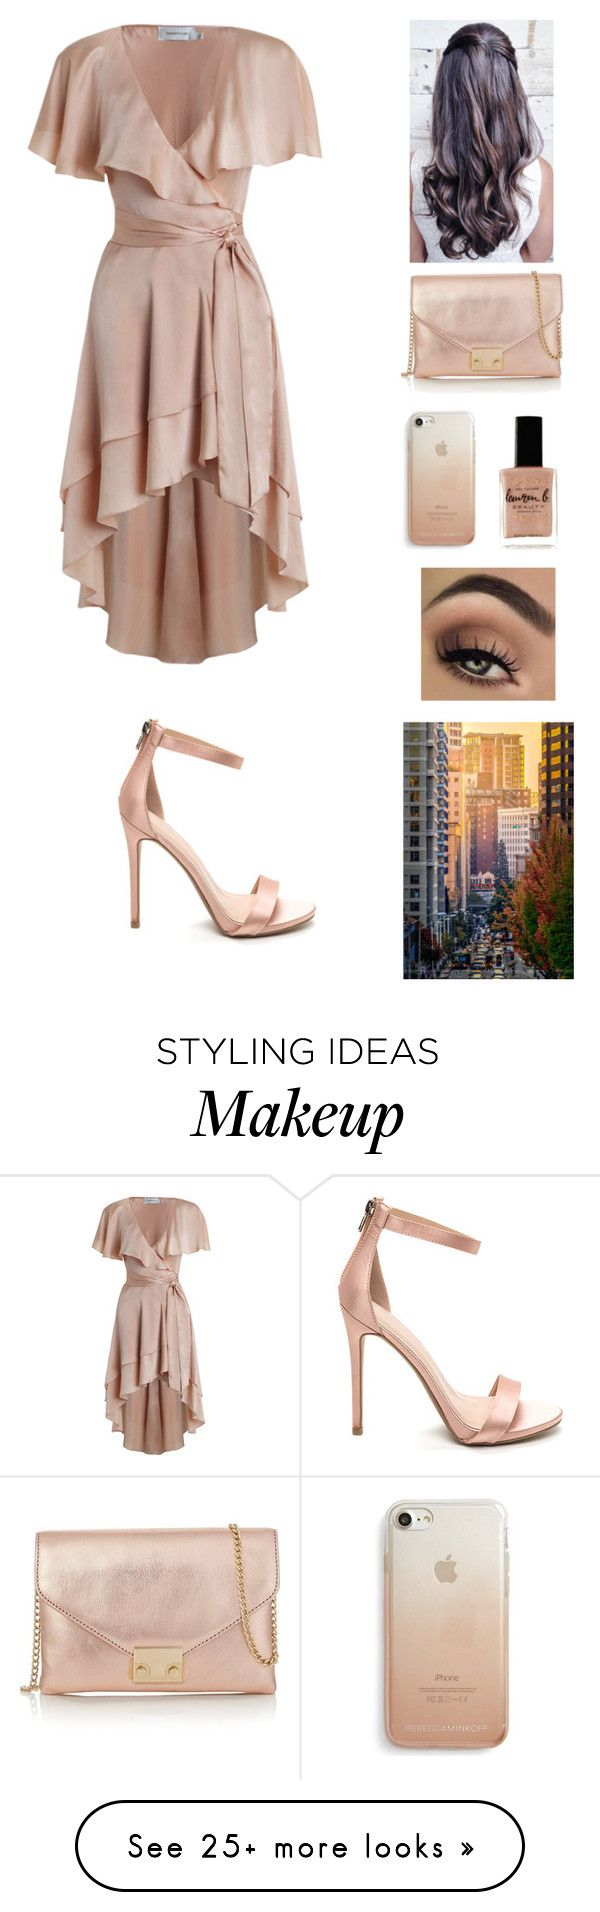 """""""Untitled #943"""" by france247 on Polyvore featuring Zimmermann, Loeffler Randall, Rebecca Minkoff and Lauren B. Beauty"""